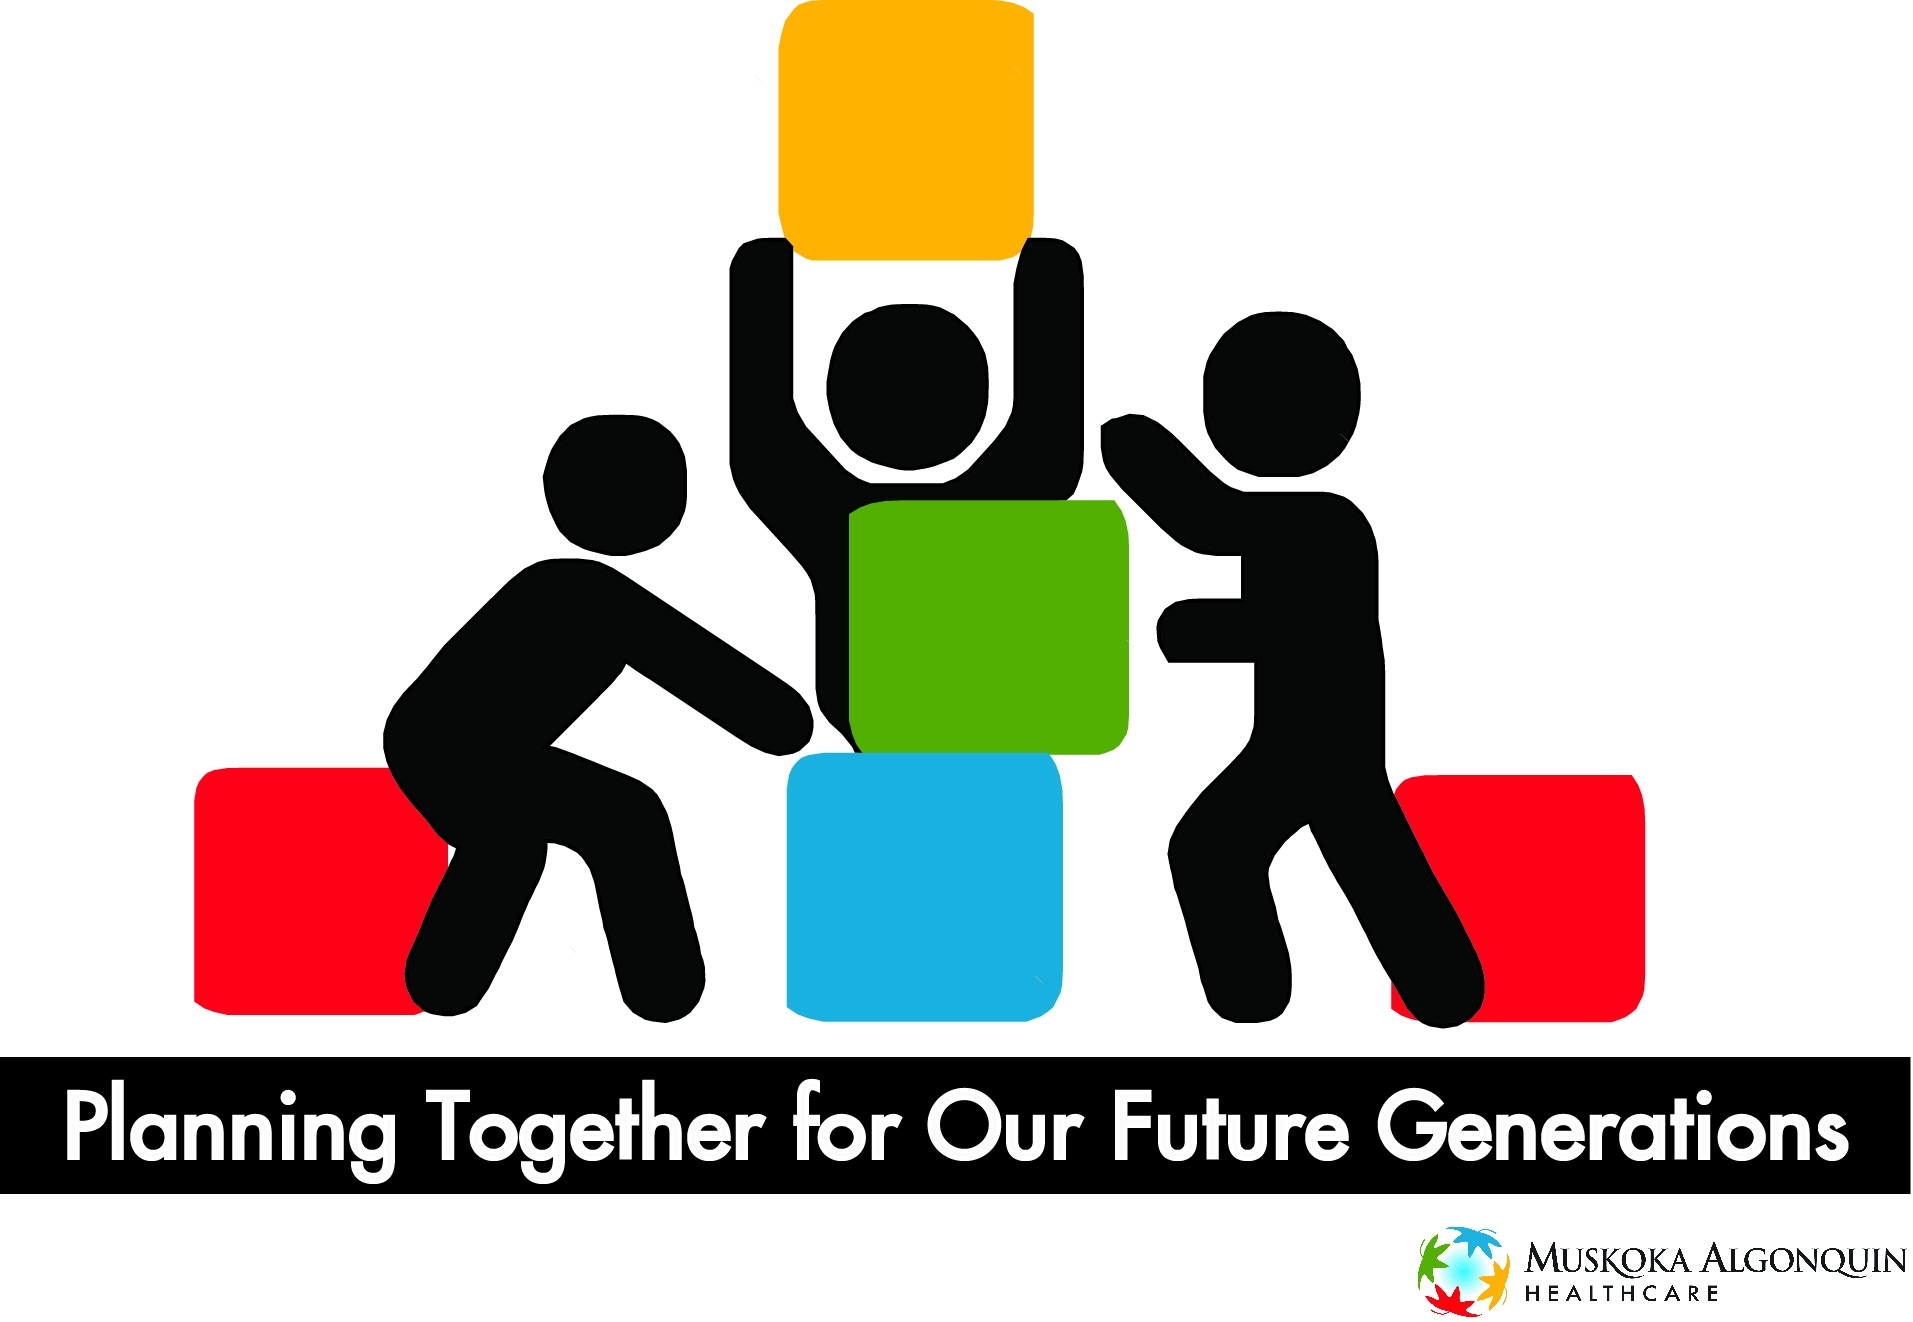 Planning Together for Our Future Generations